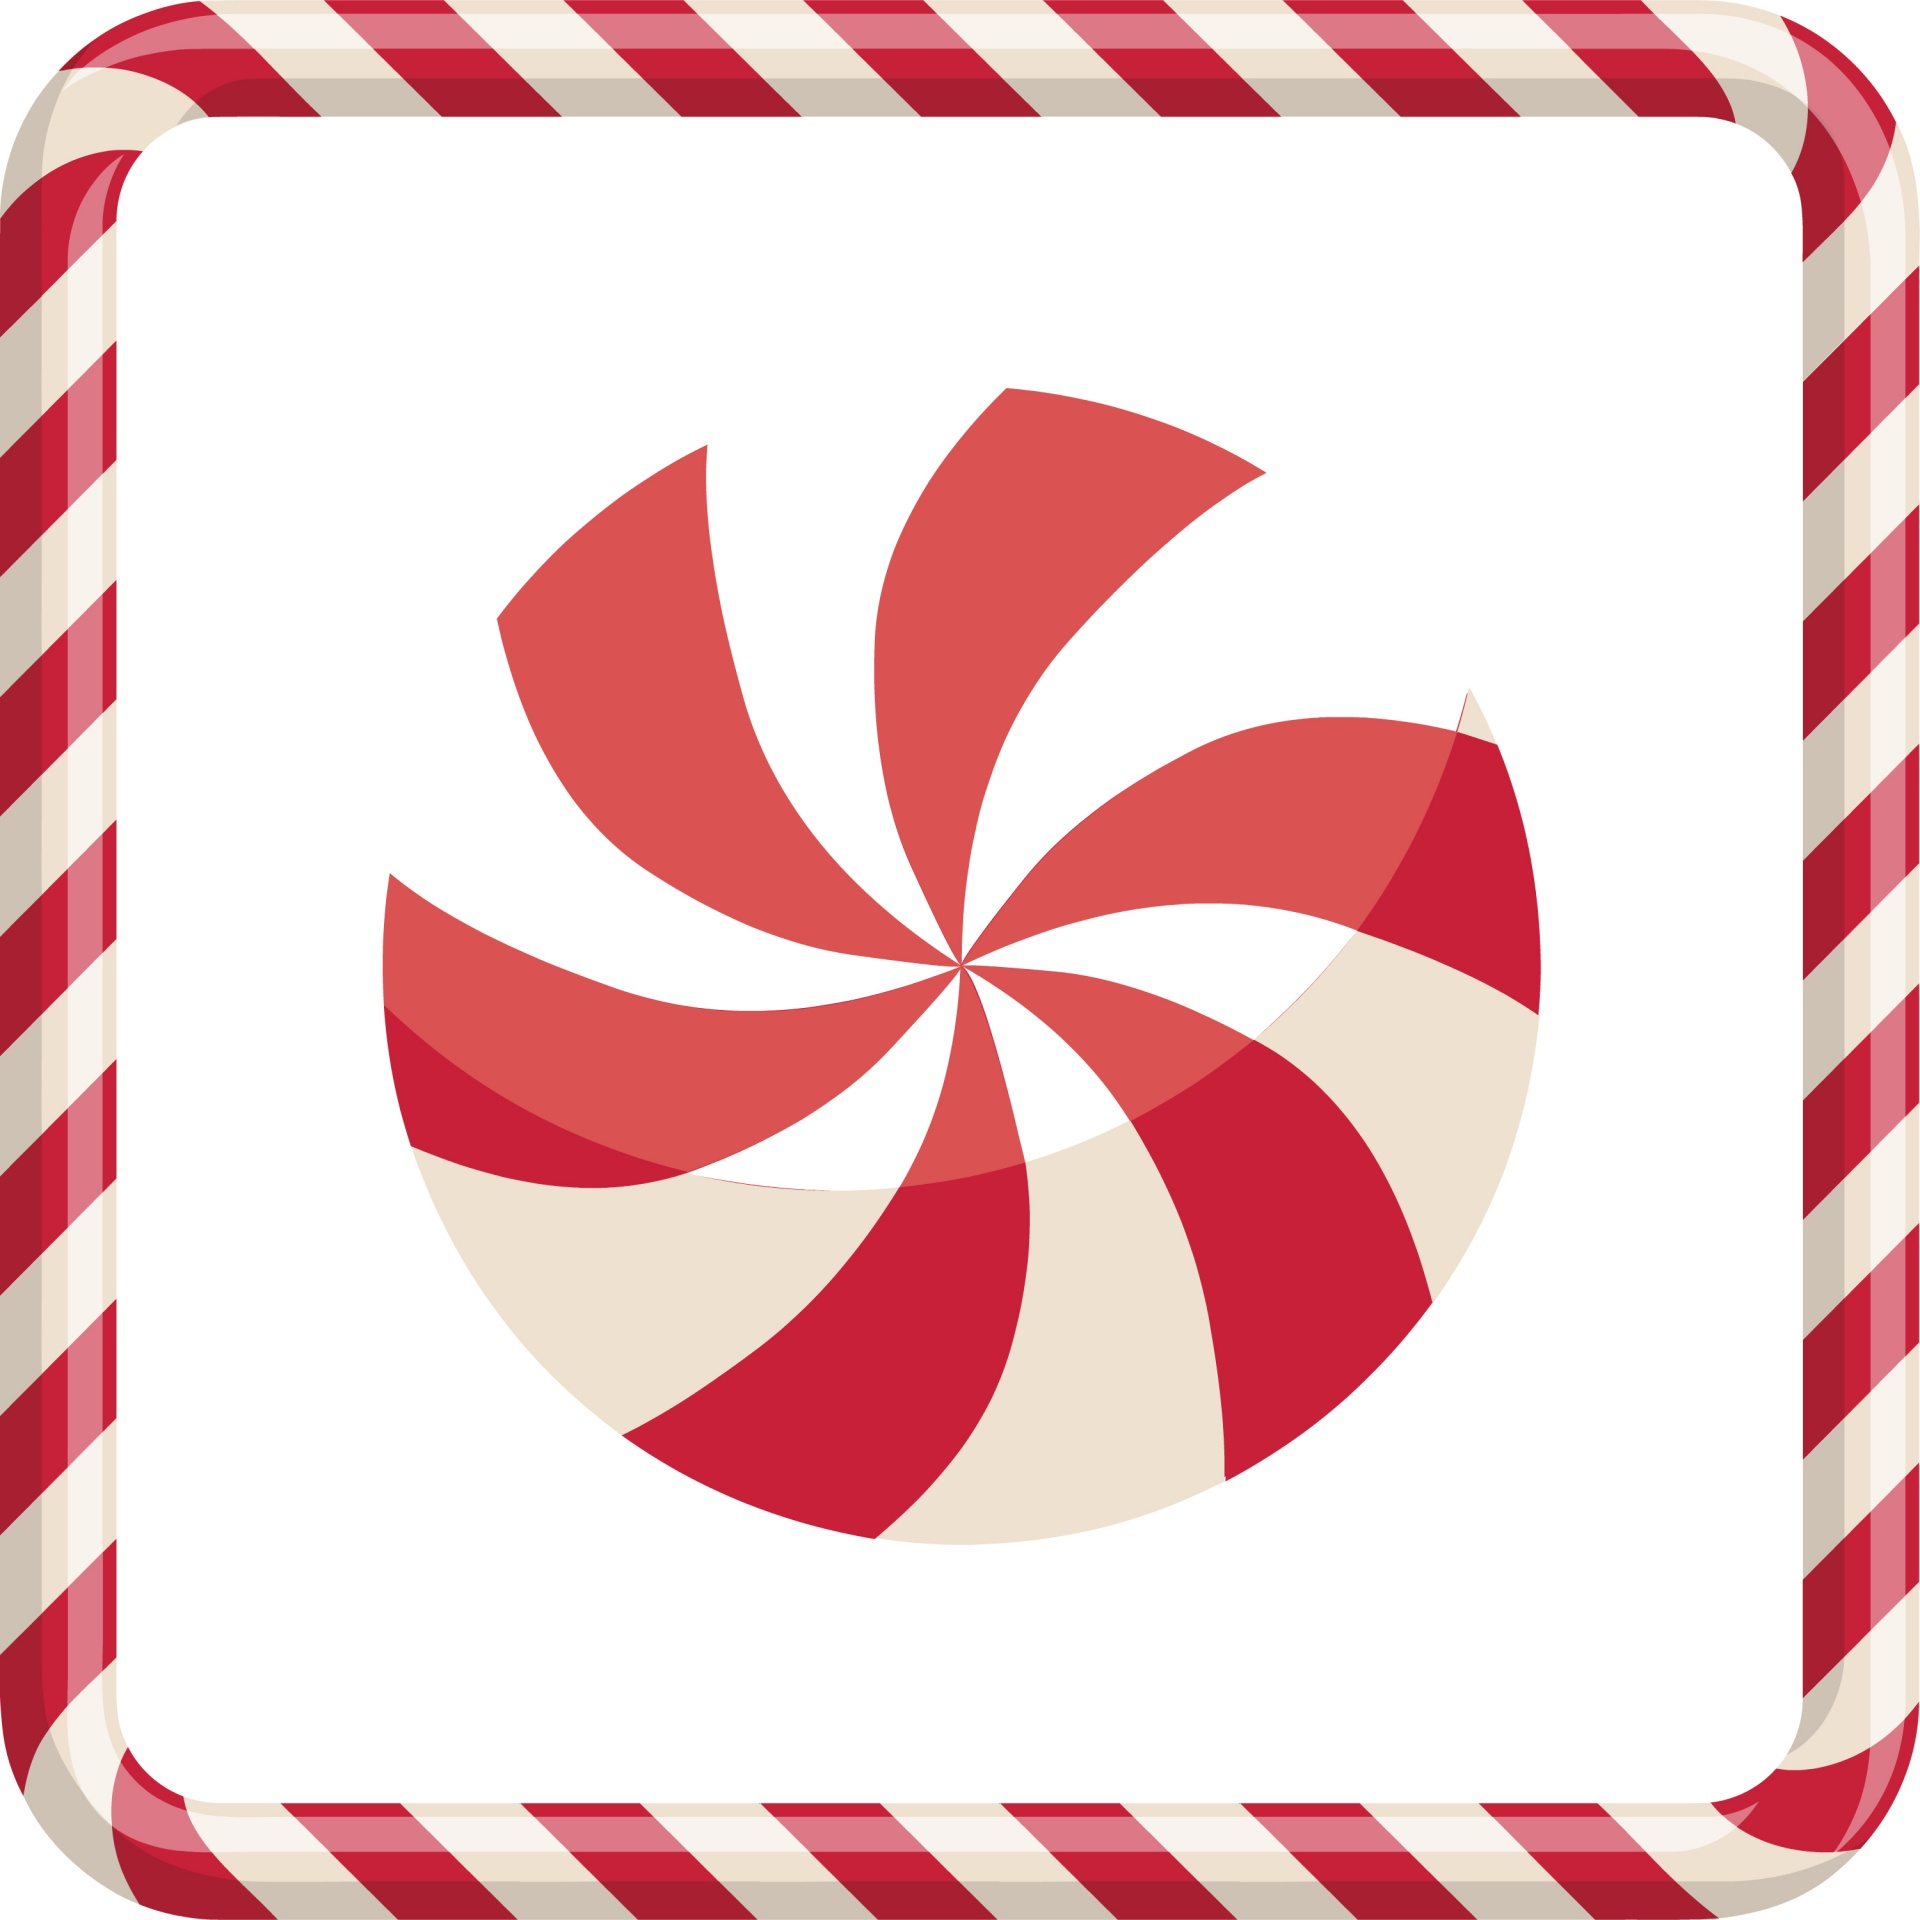 Candy Cane Candy Free Stock Photo